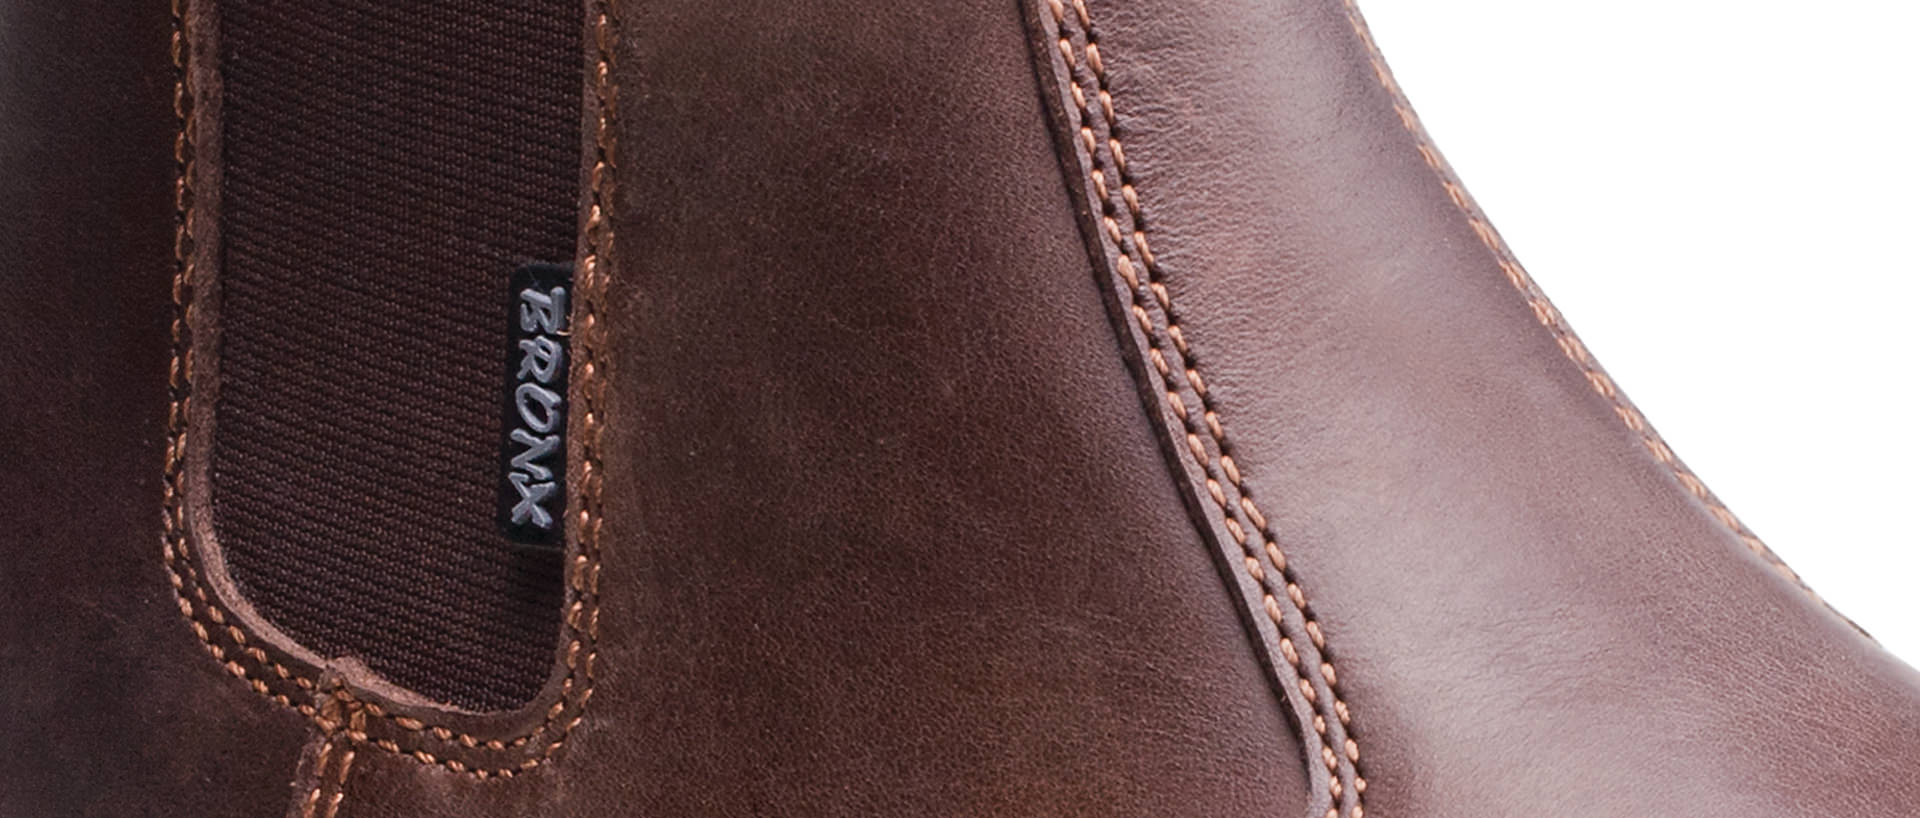 chelsea_brown_specific_shoe_screen_width_detail_shot_1920px_818px